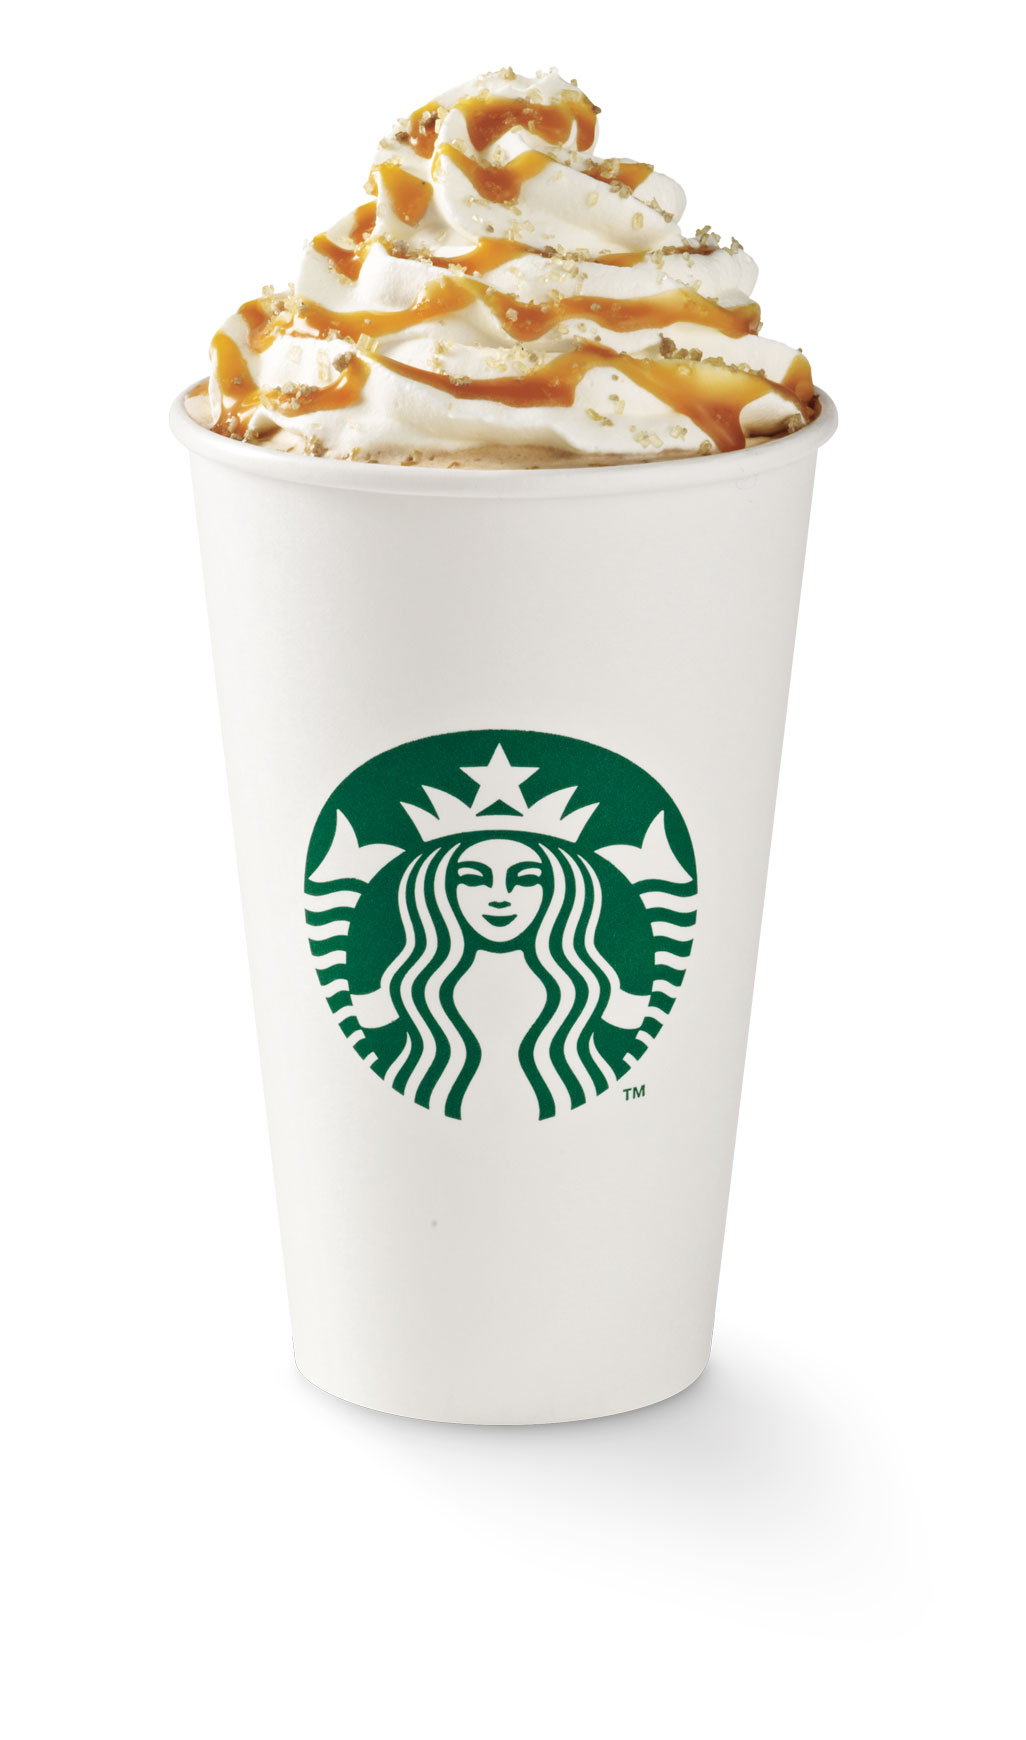 Starbucks Mocha Images - Reverse Search